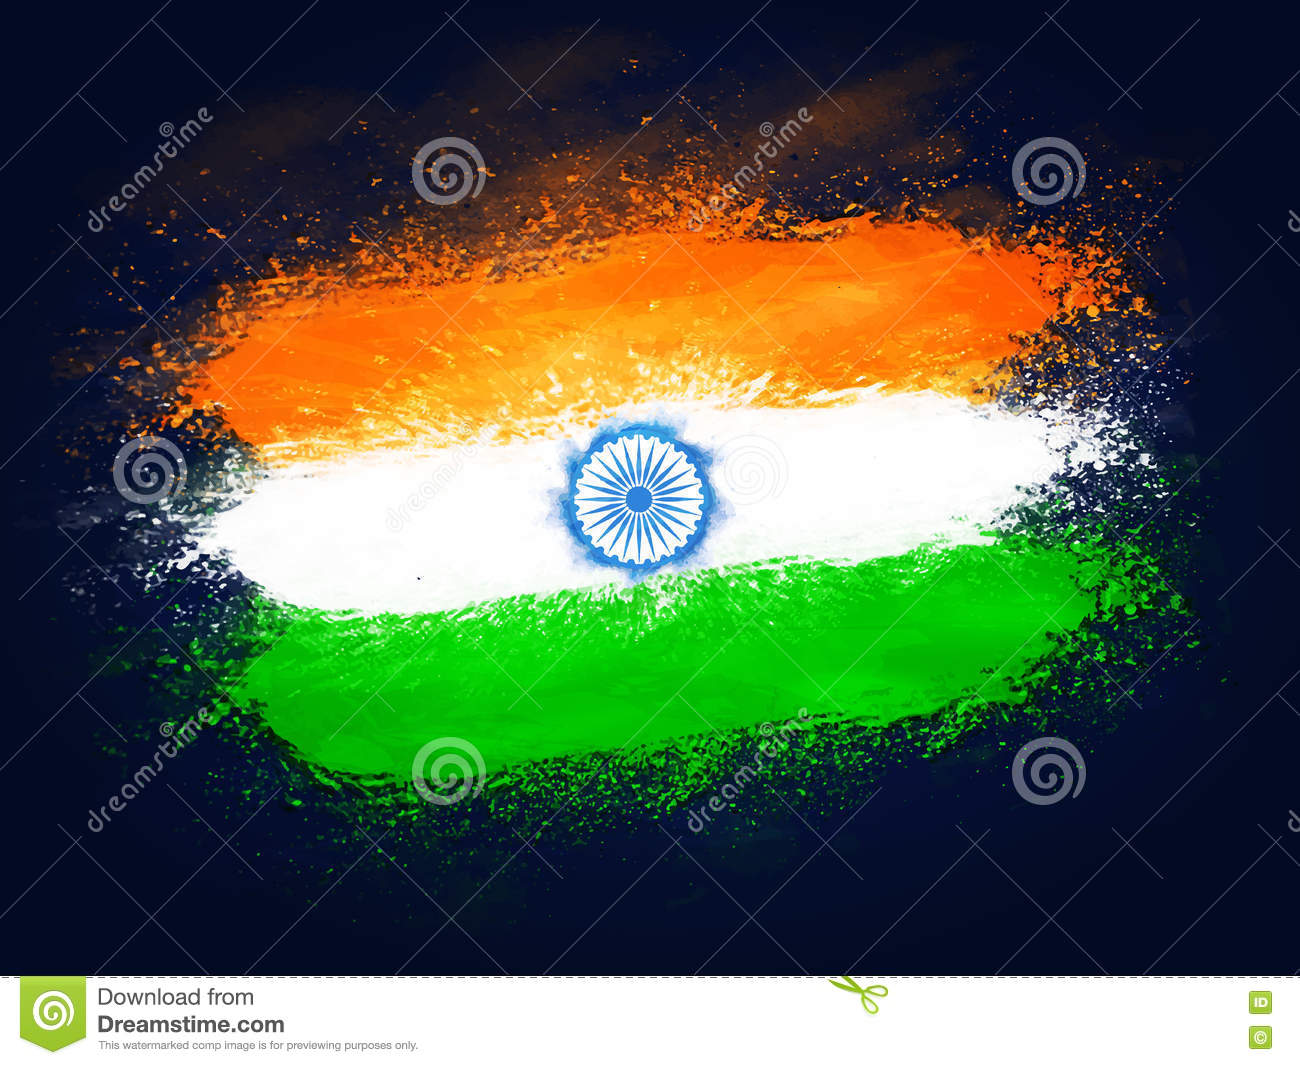 Creative Watercolor Indian Flag Background For Indian: Creative Indian Flag Design For Independence Day. Stock